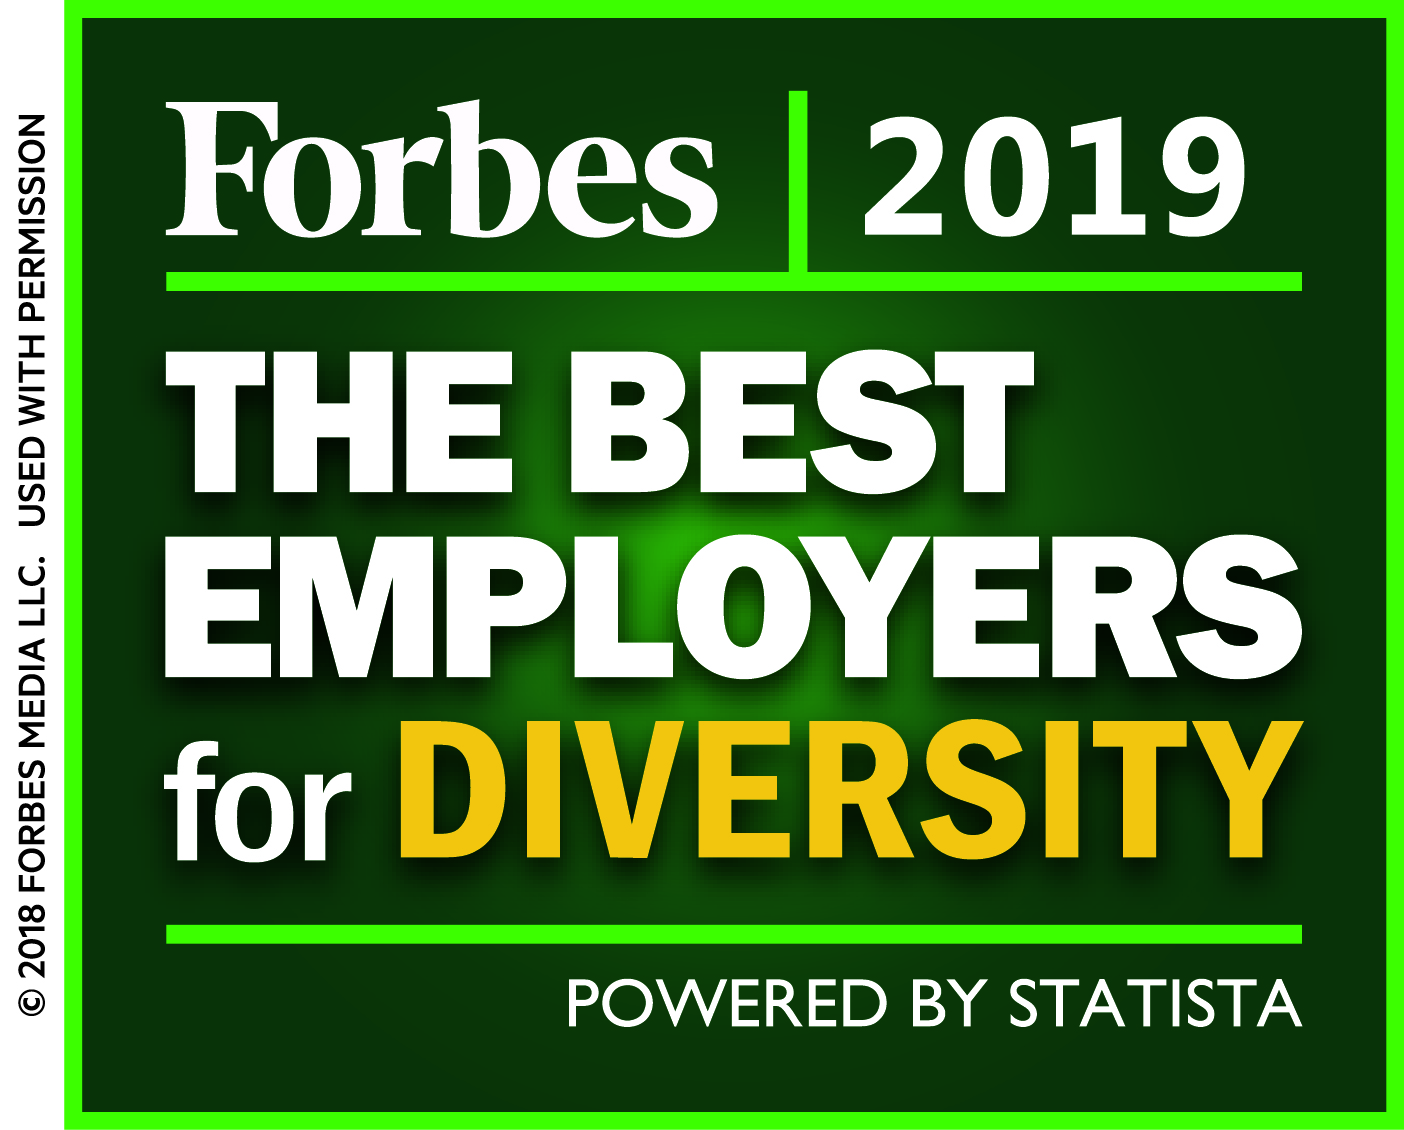 MD Anderson award - Forbes 2018 Best Employers for Diversity